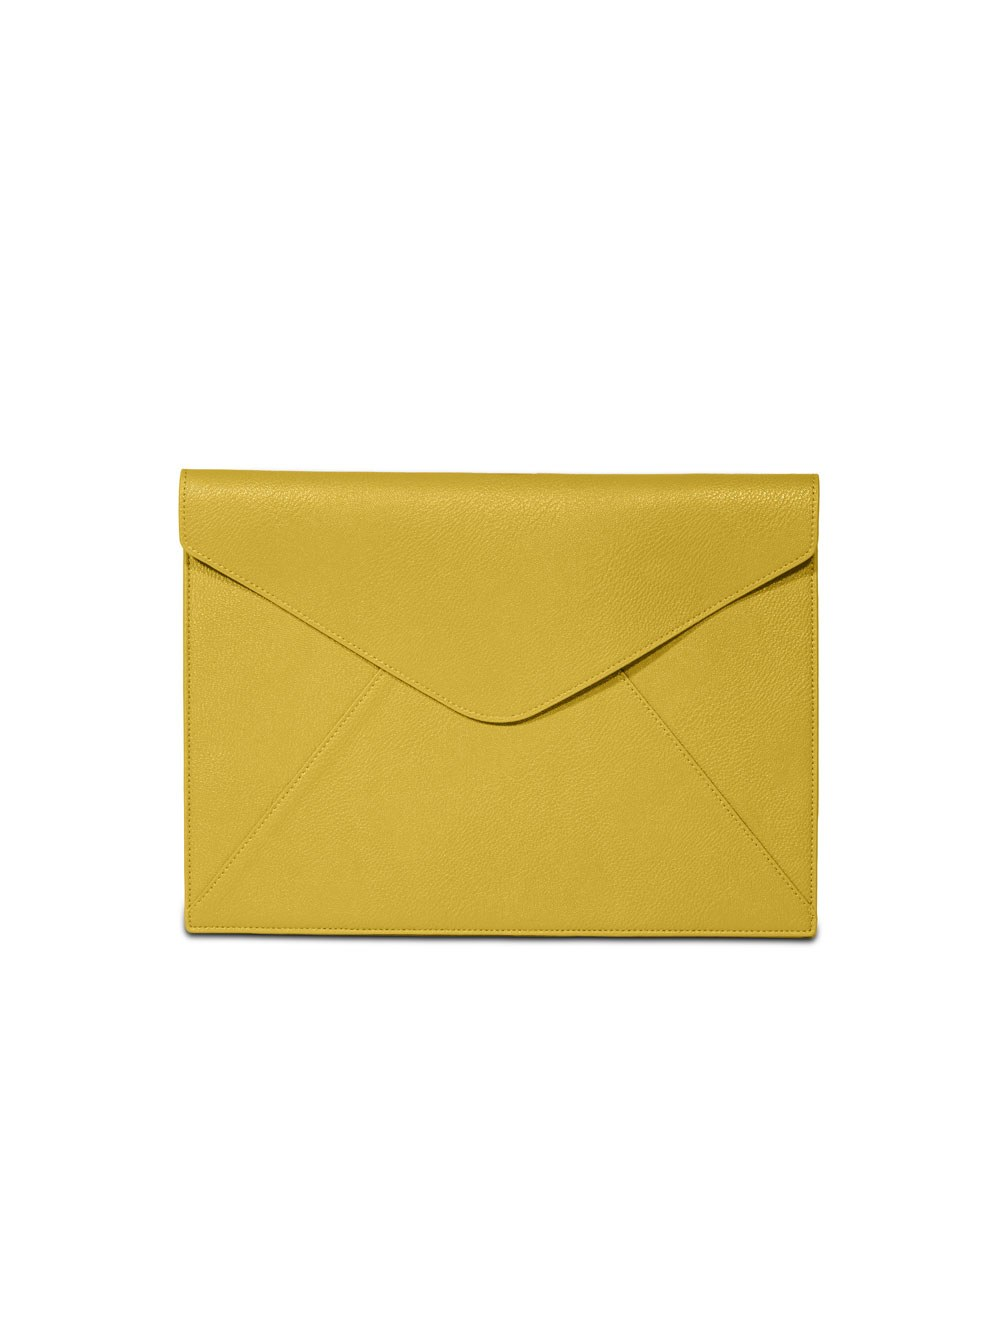 Document holder envelope A4 Fedor - Chartreuse